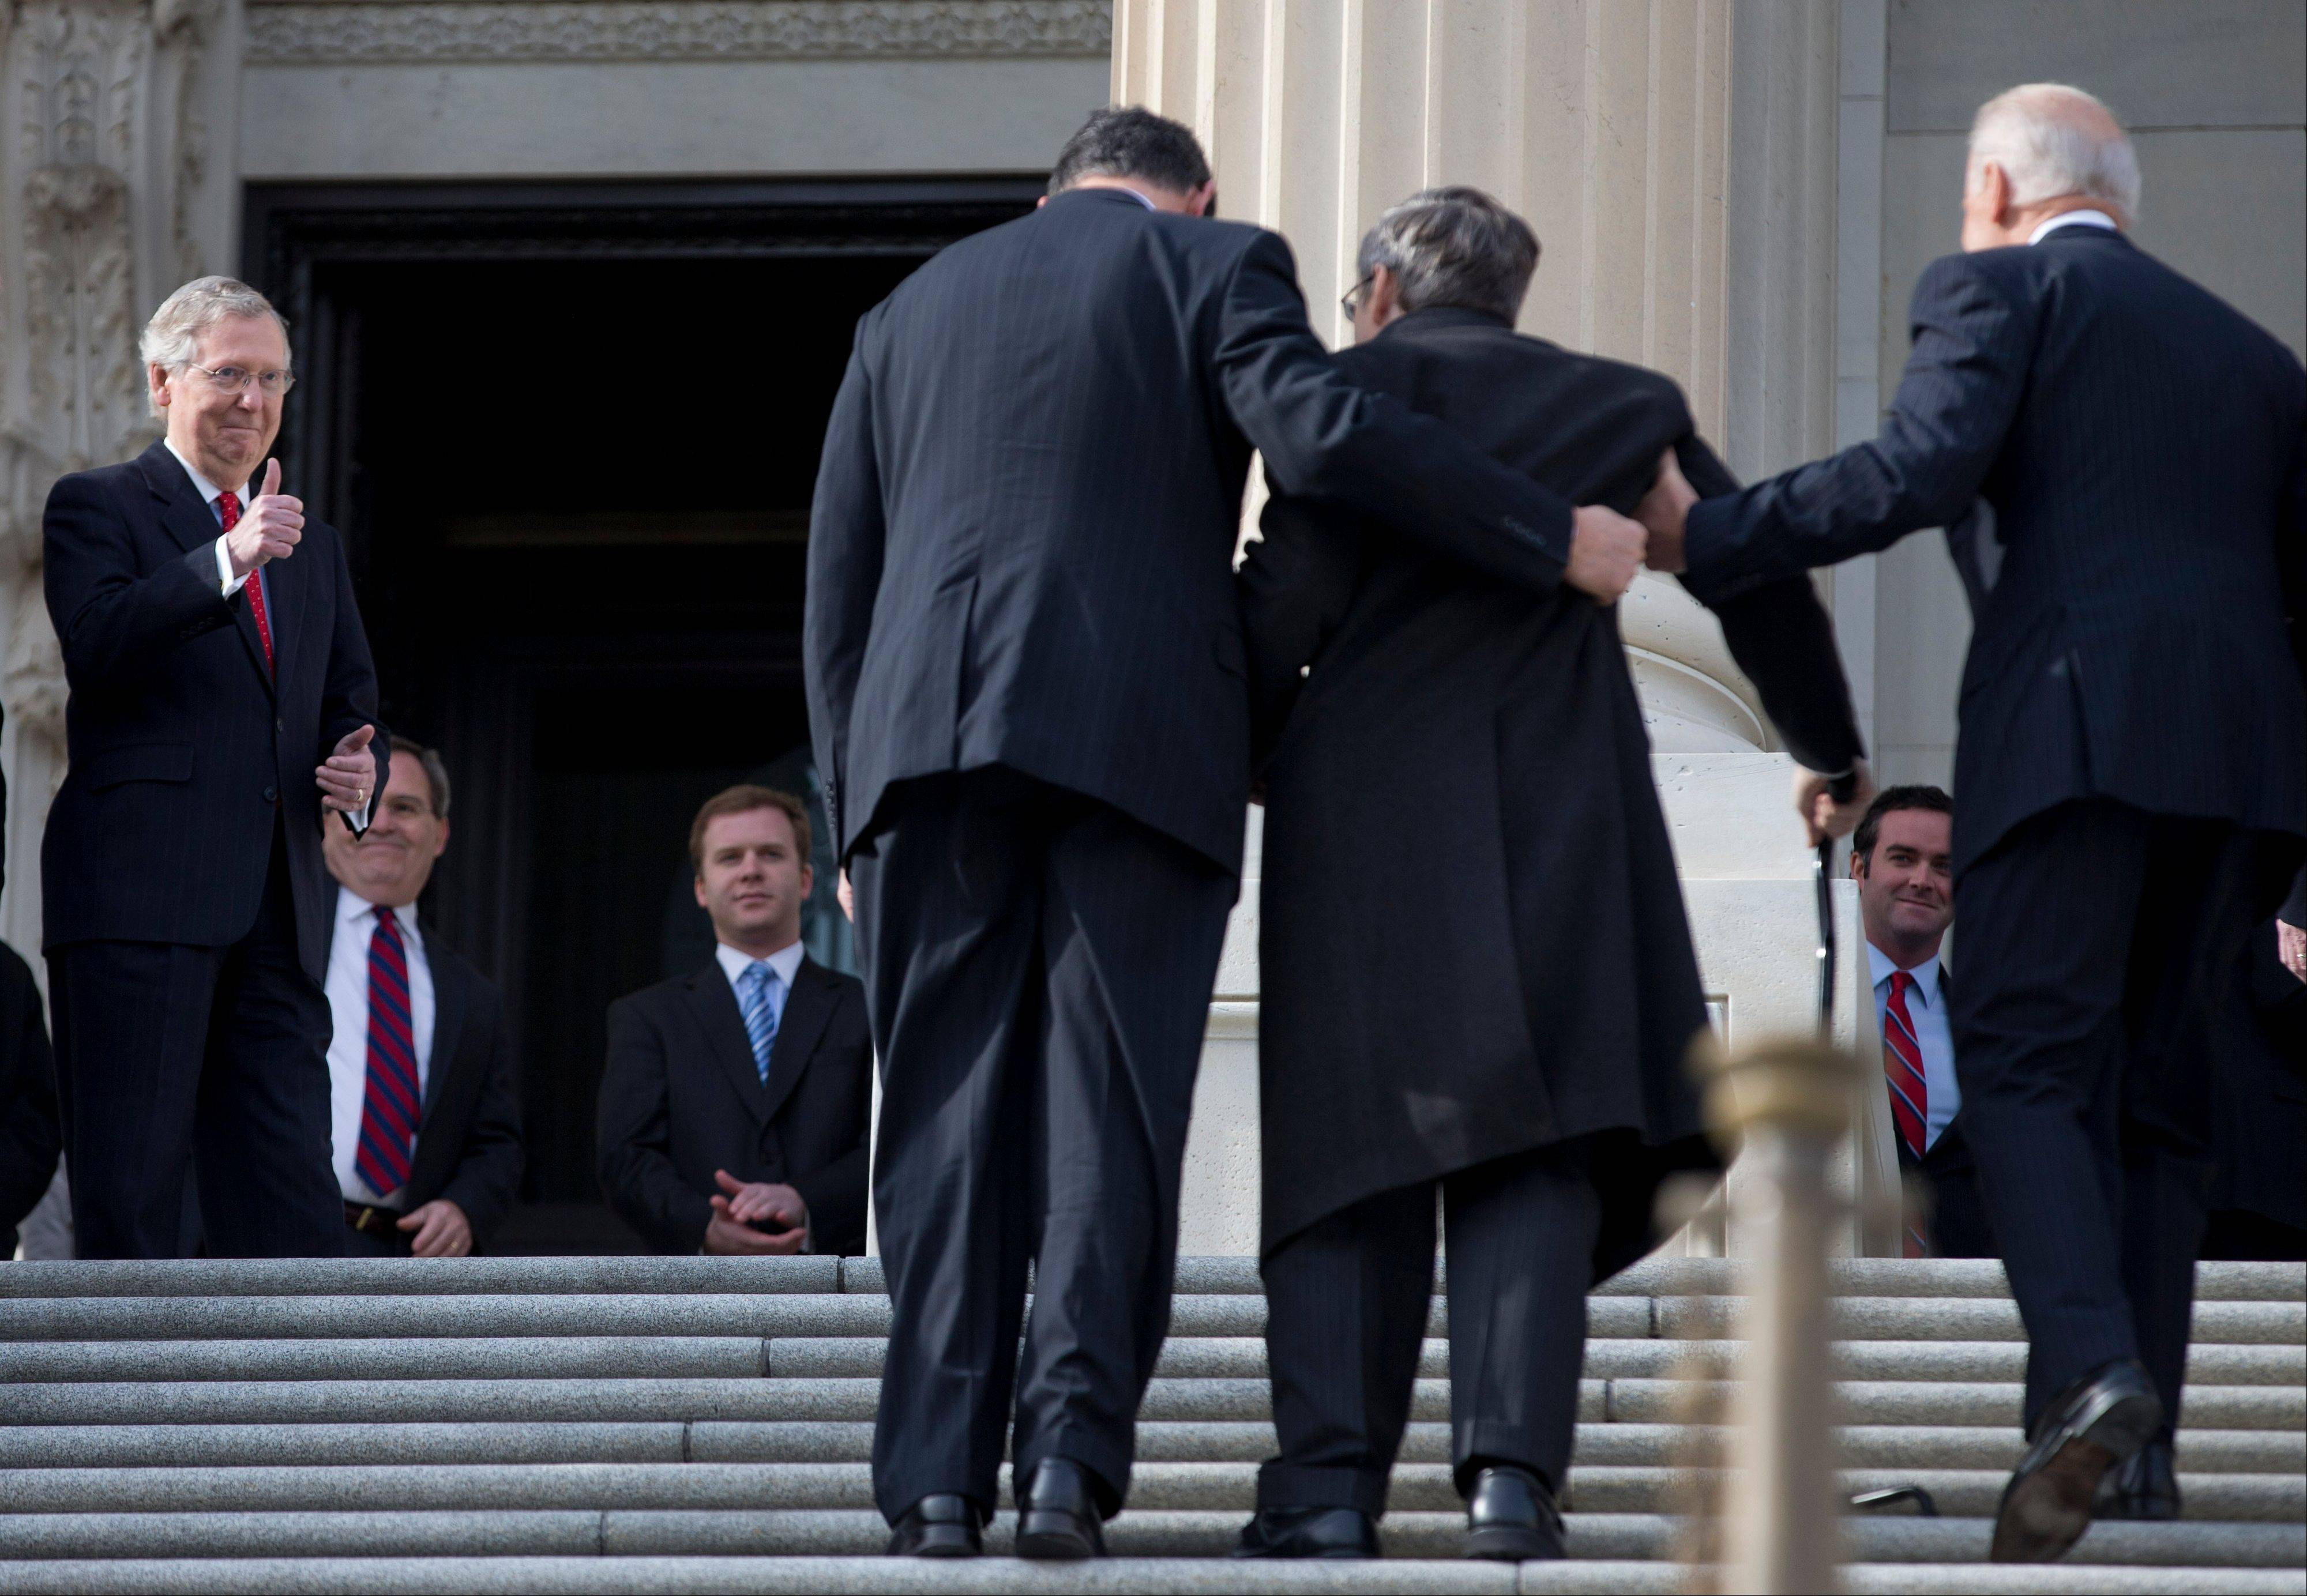 Senate Minority Leader Sen. Mitch McConnell of Kentucky gives a thumbs-up as Sen. Mark Kirk, of Highland Park, second from right, walks up the steps to the Senate door of the Capitol building. Kirk is accompanied by Vice President Joe Biden, right, and Sen. Joe Manchin.